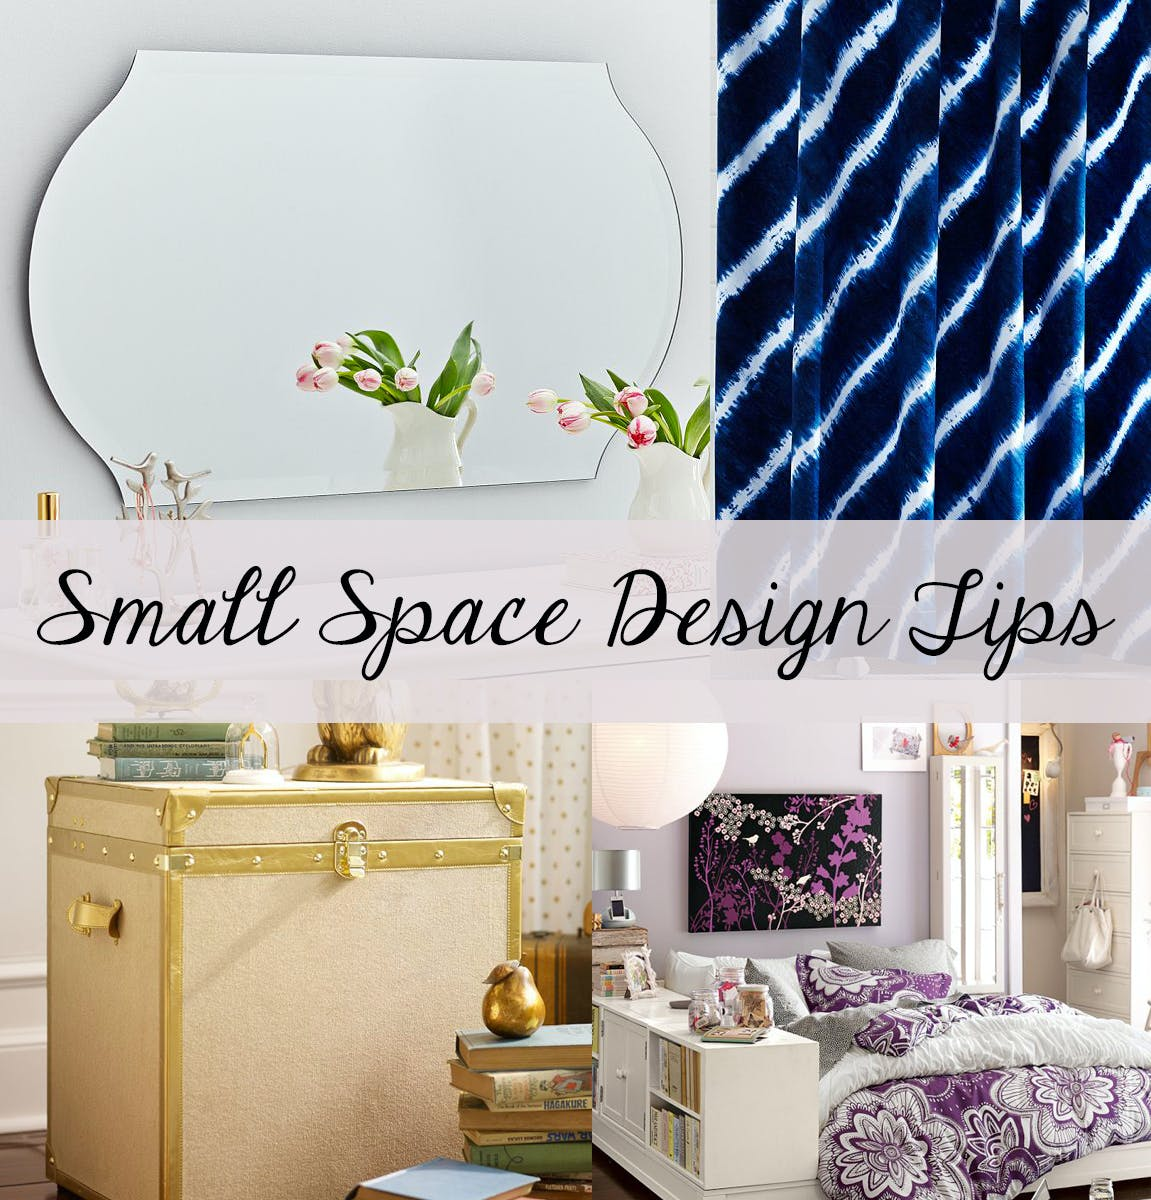 Small space design tips – how to make the most of your apartment or dorm room!